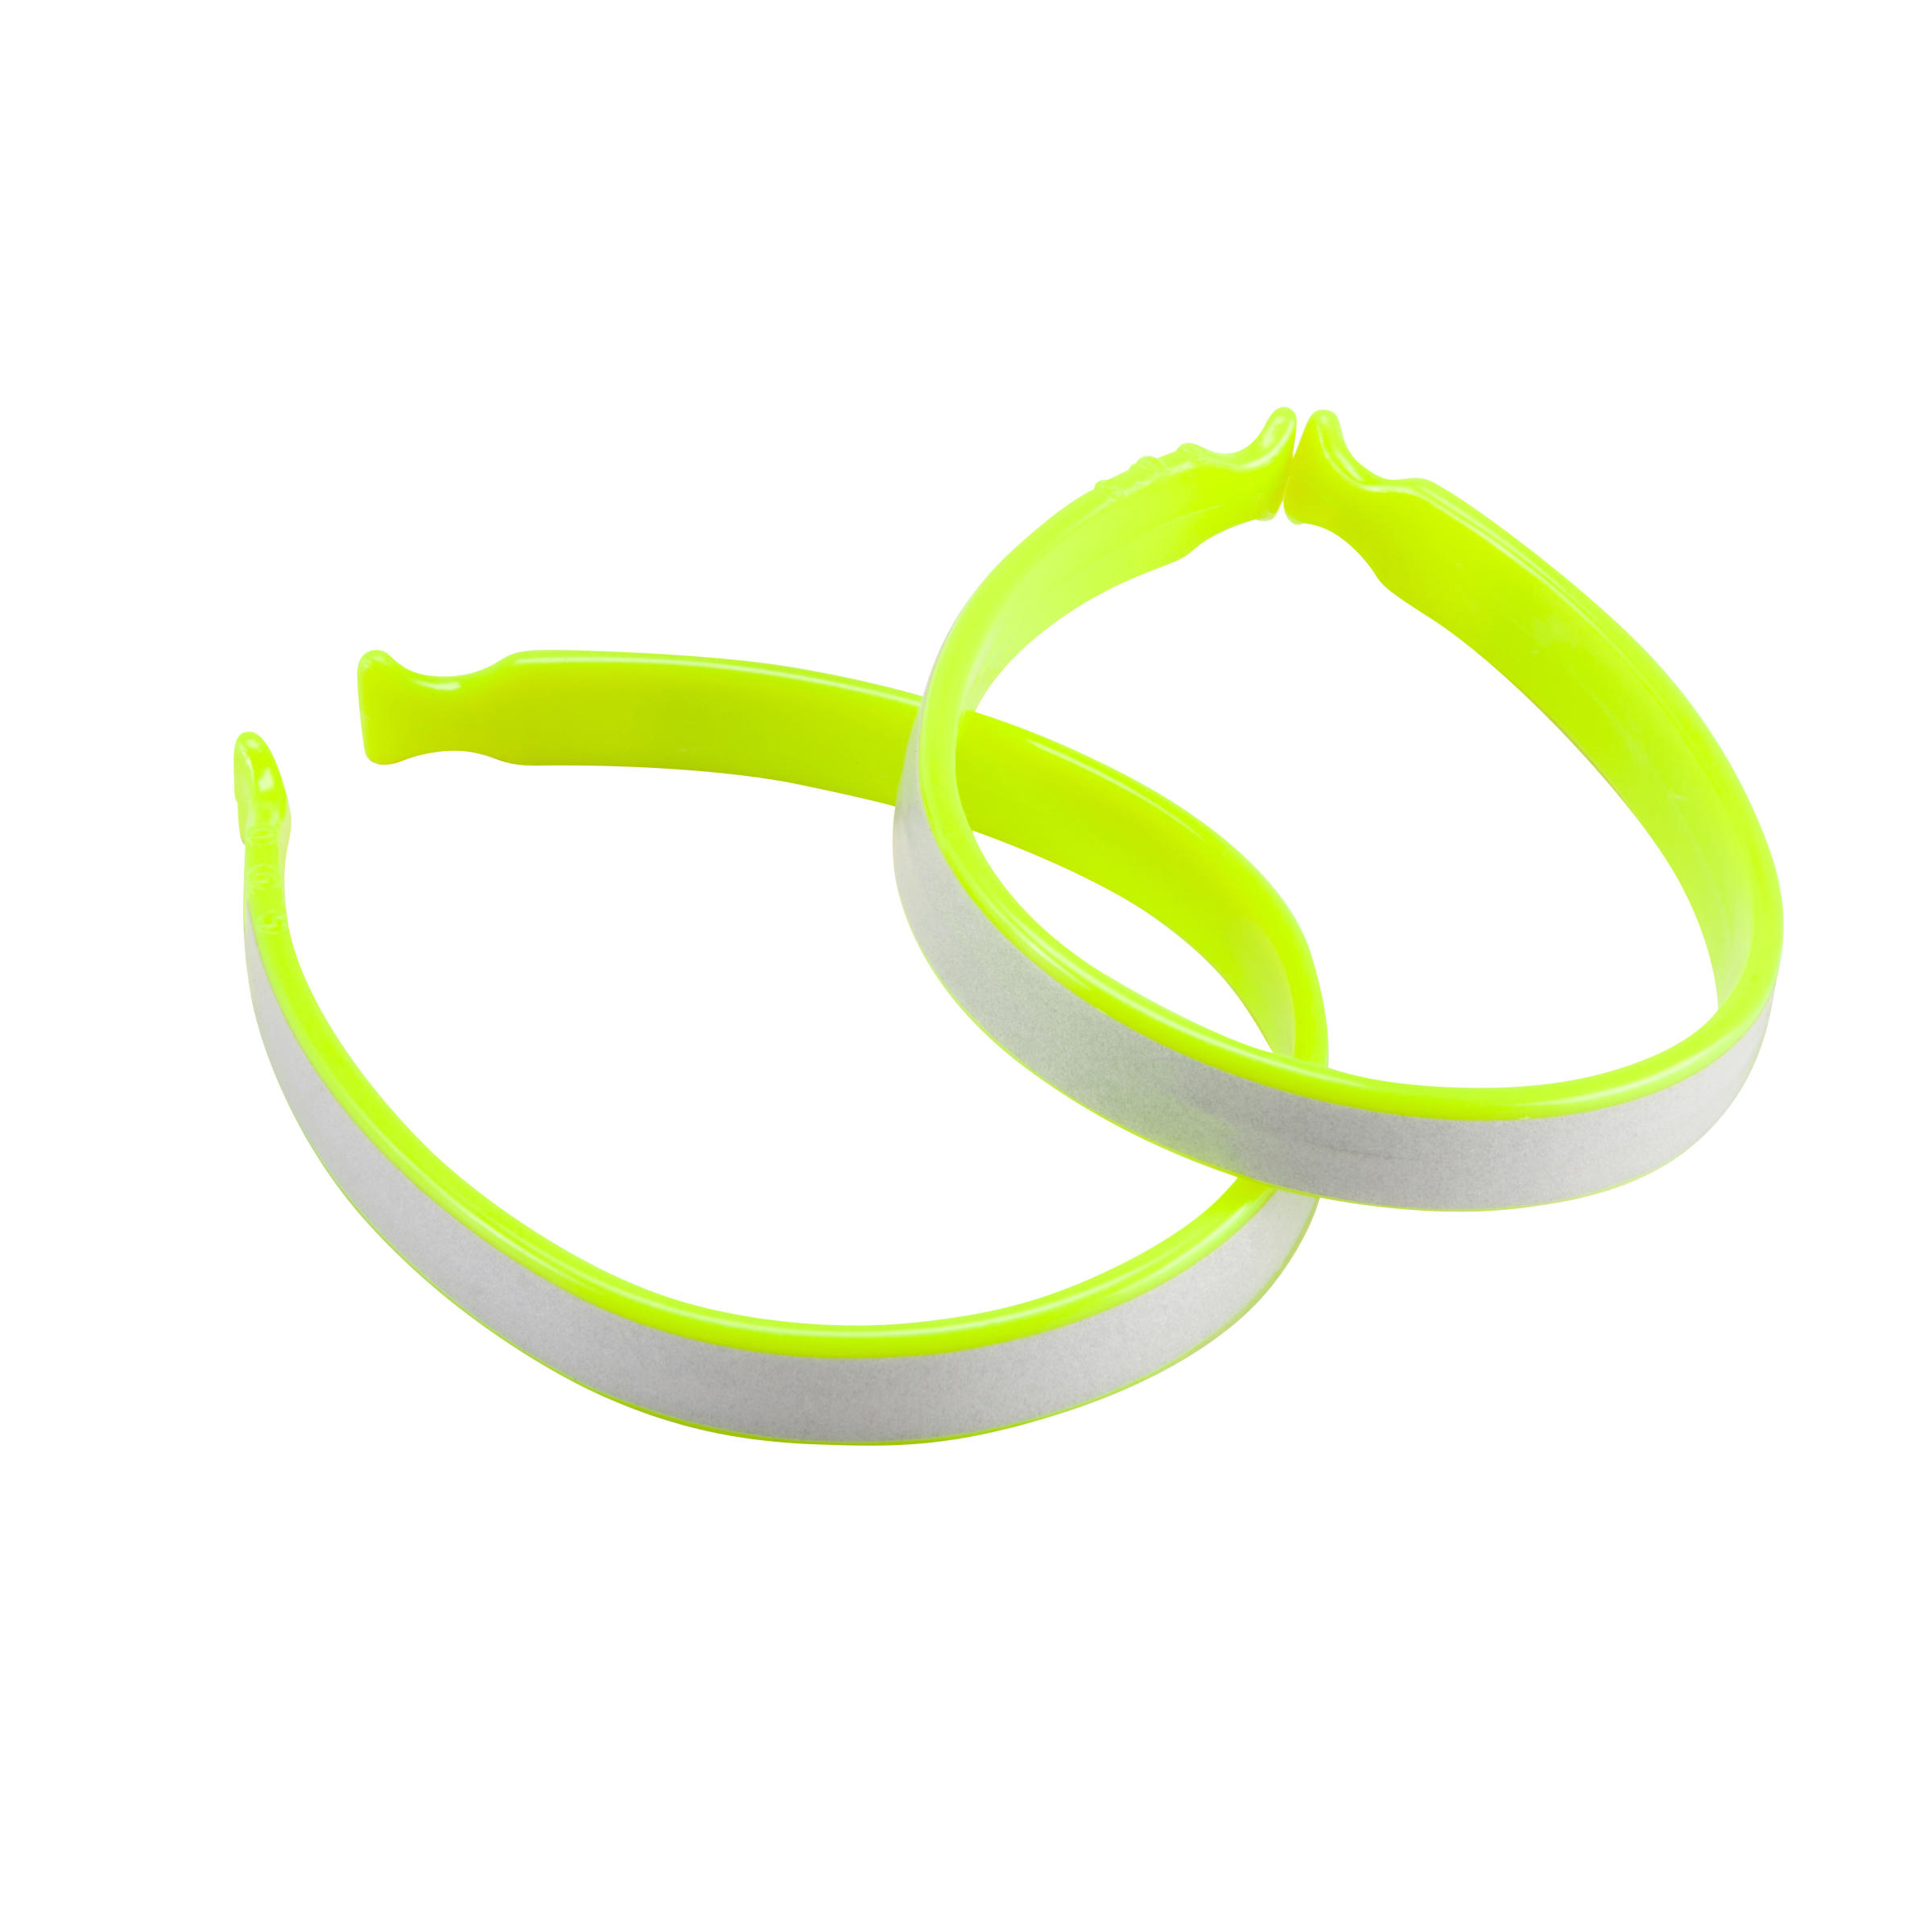 Bicycle Clips - Yellow